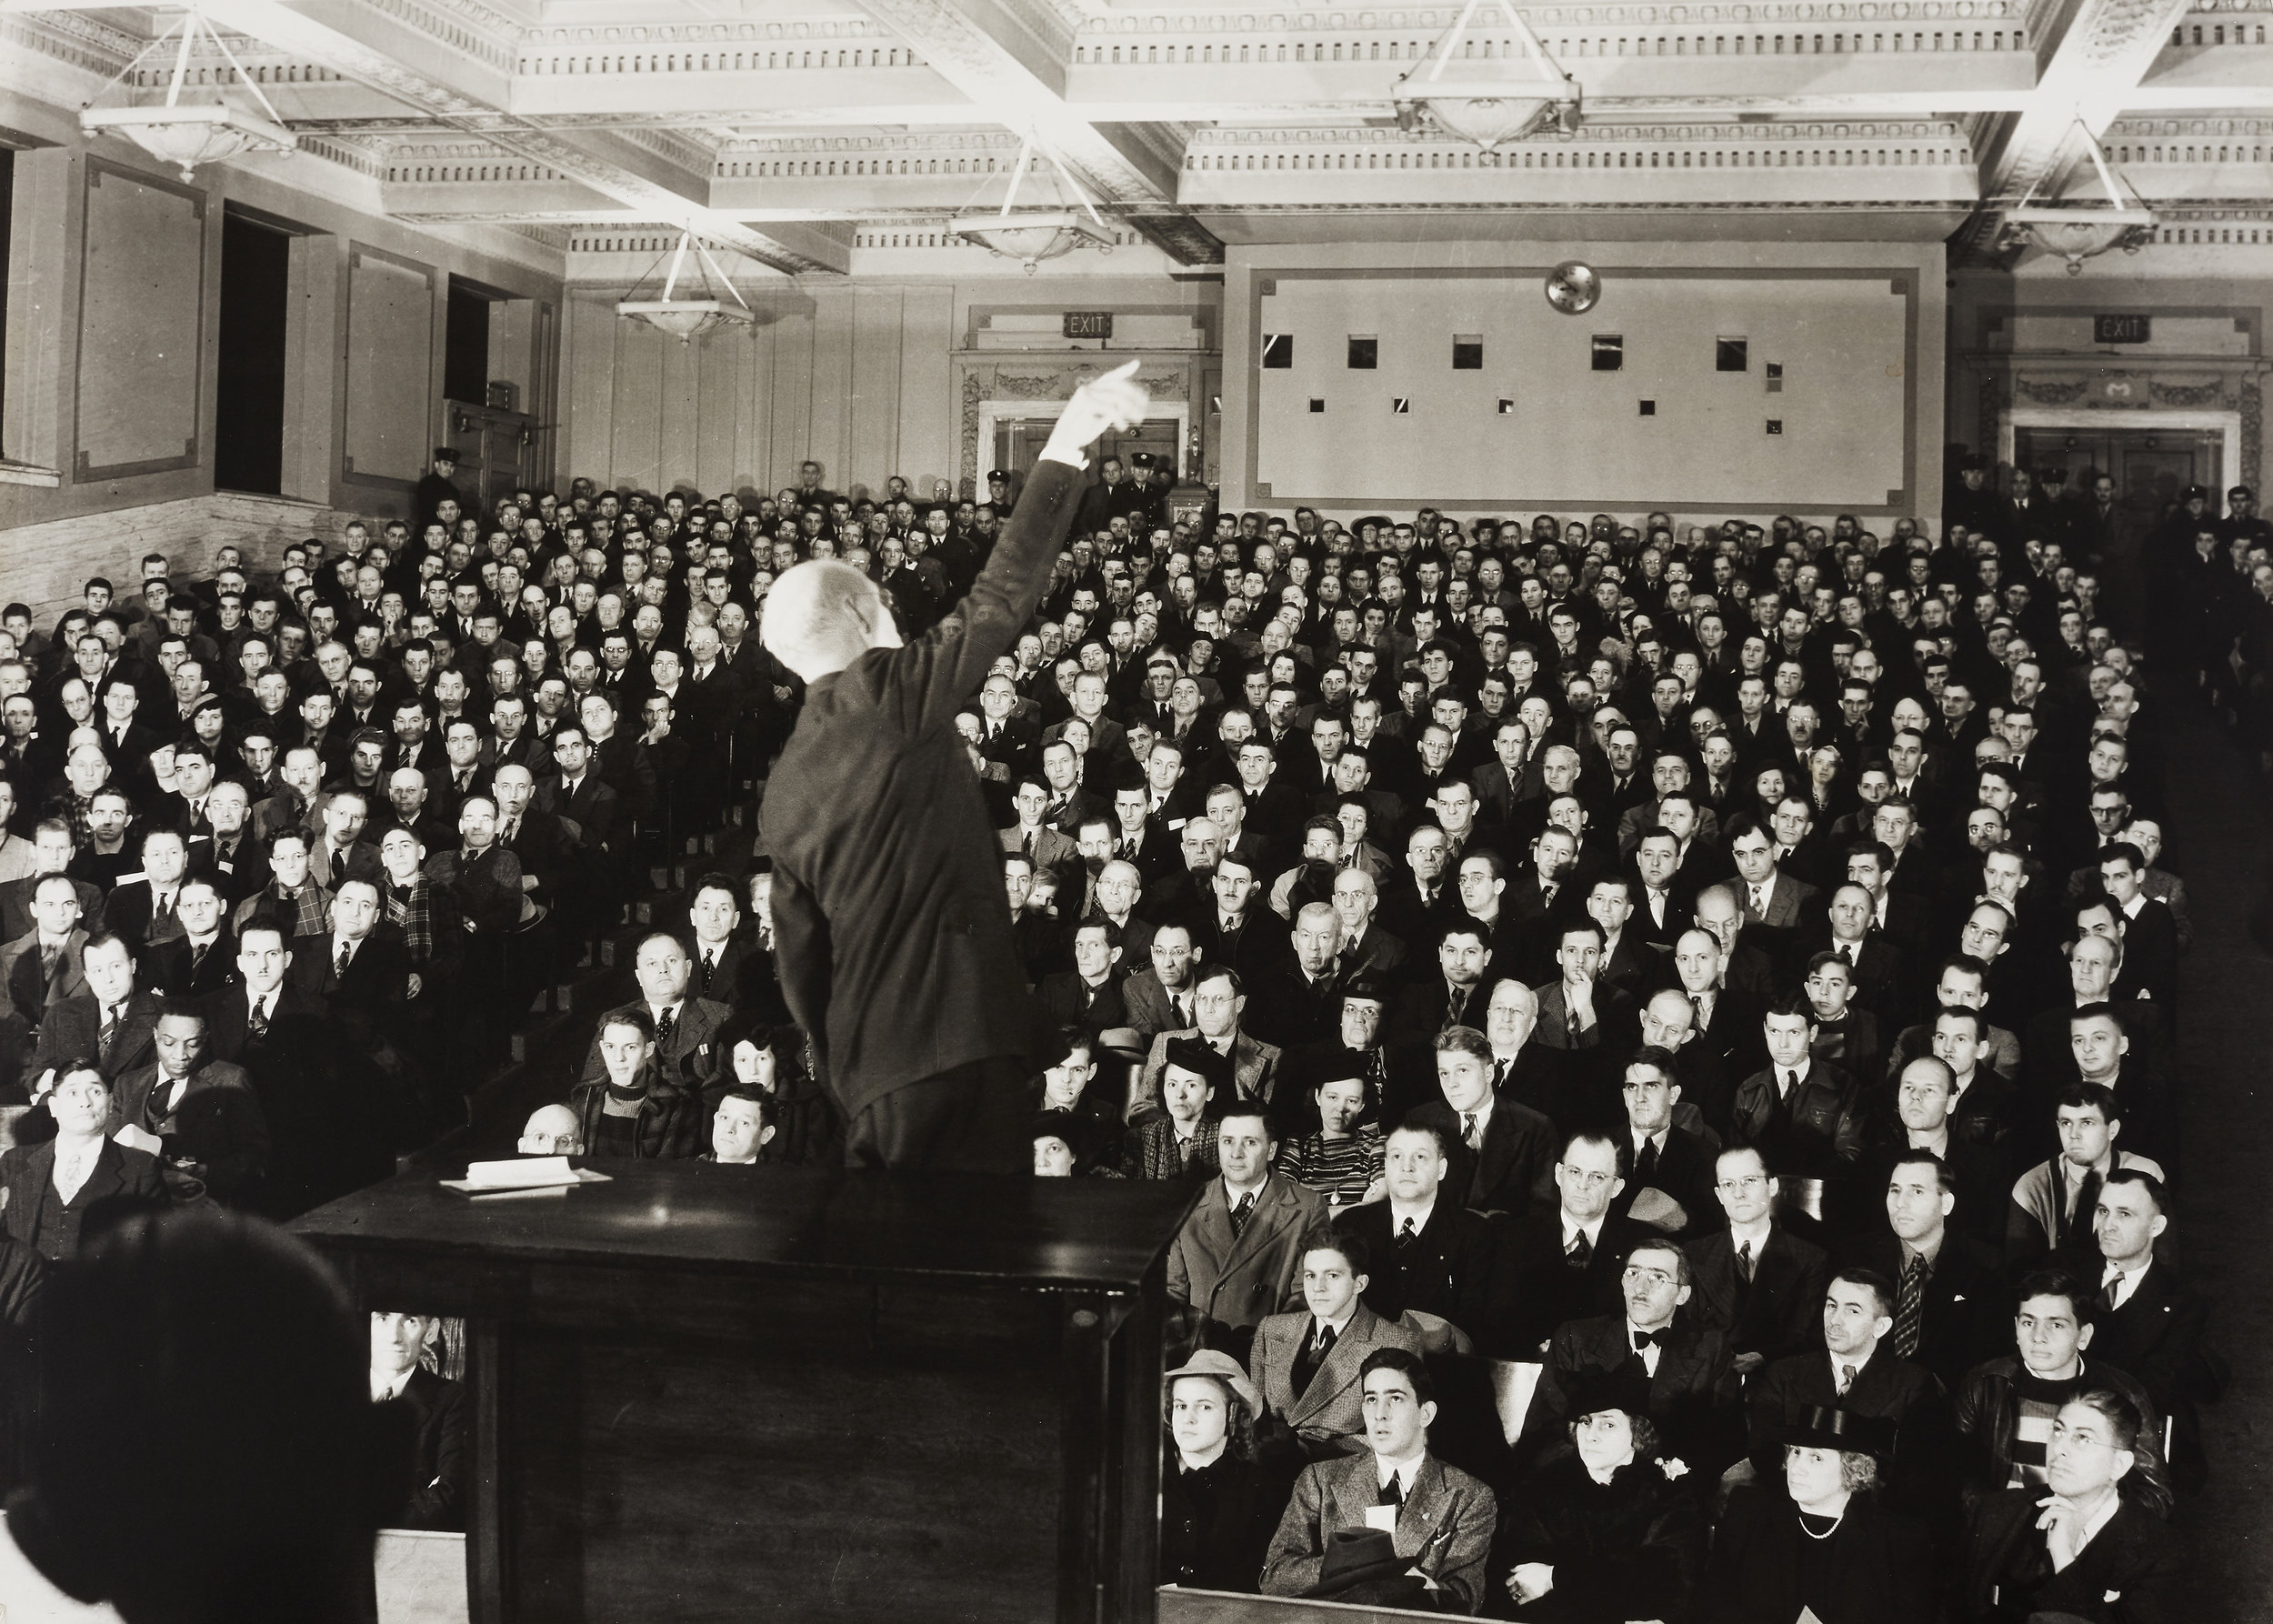 Edward Rohlke Farber,  Foreman's Safety School - 9th Street Auditorium, Milwaukee Library , ca. 1940. Gelatin silver print. Gift of Janet and Marvin Fishman to the Edward Farber Memorial Collection, M1983.388. Copy photo by John R. Glembin. Photo courtesy: Milwaukee Art Museum.